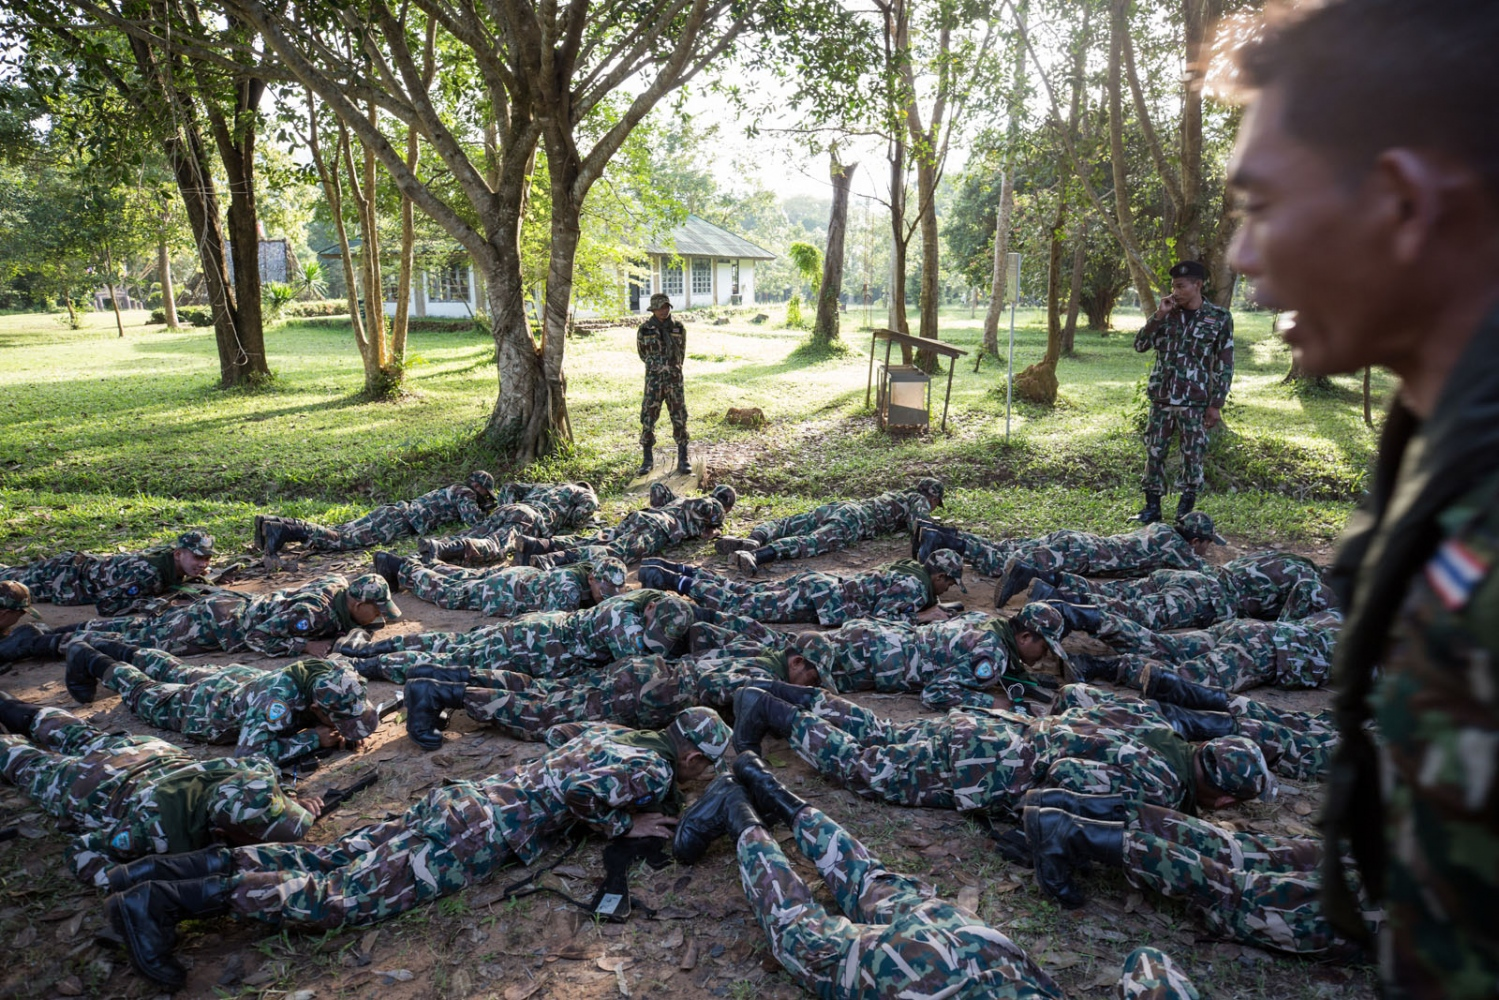 New forest ranger recruits are ordered to do pushups before they are allowed to eat lunch during a week long training course at a remote ranger station in eastern Thailand. Ta Praya National Park, Sa Kaew Province - September 2018